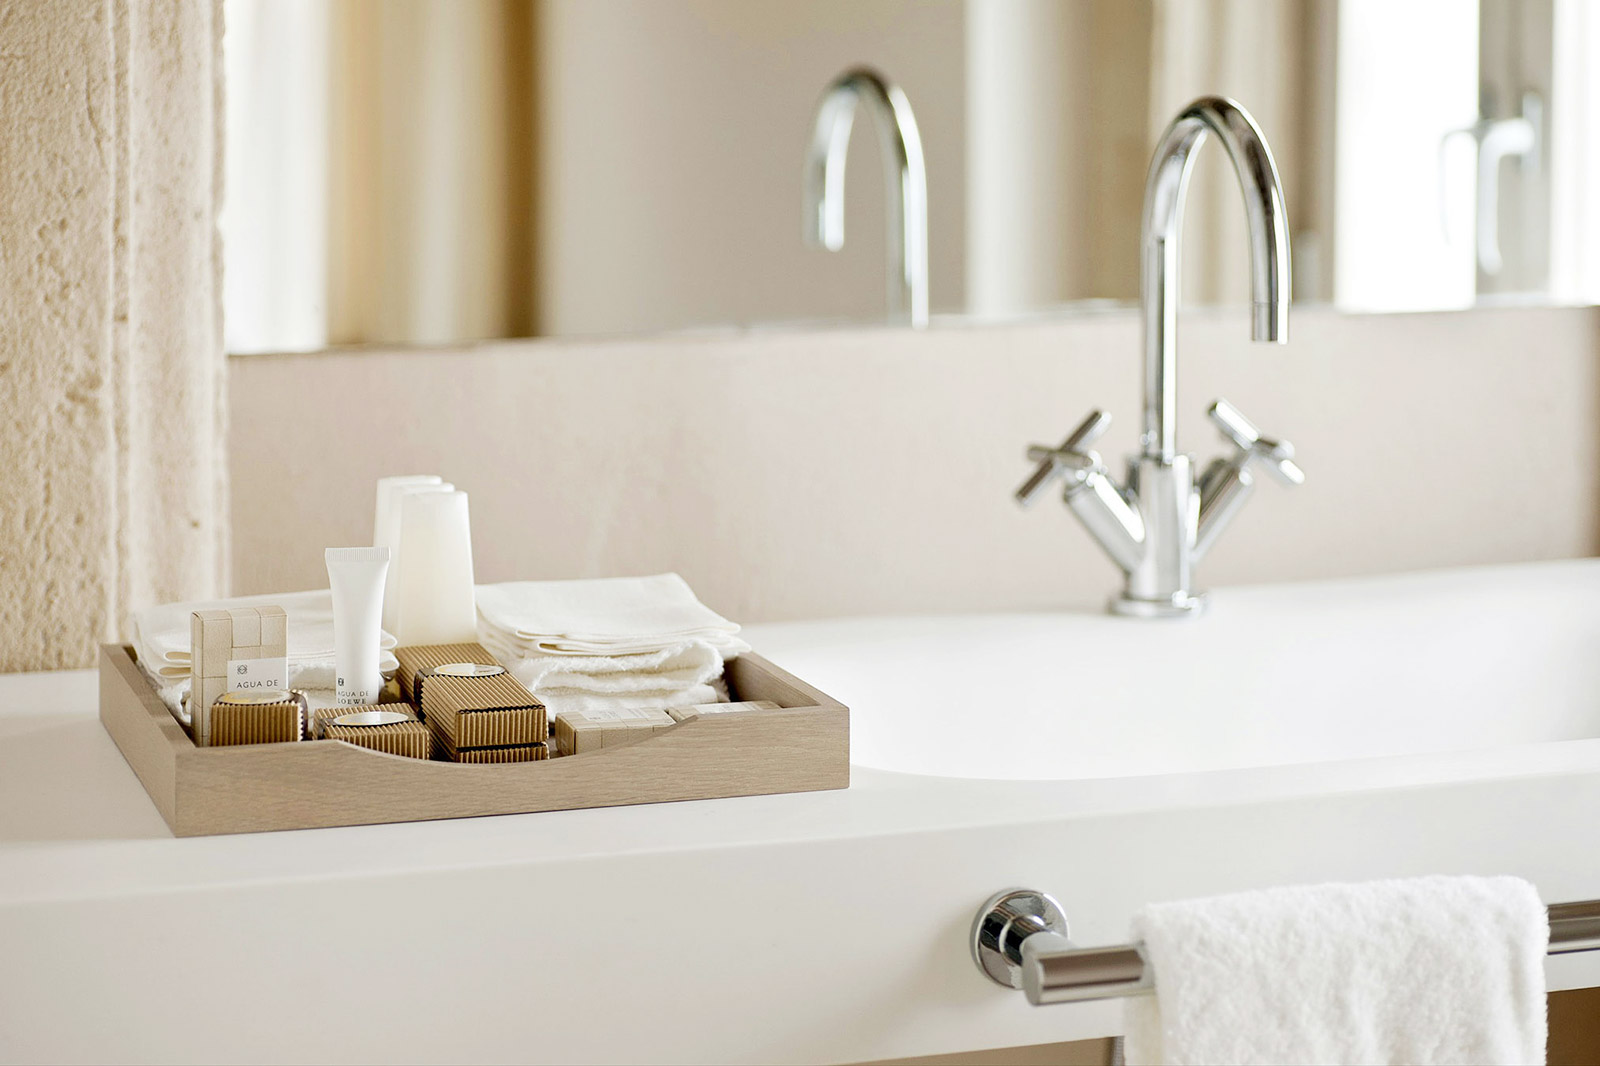 Home staging tips - Put luxurious toiletries in your bathroom